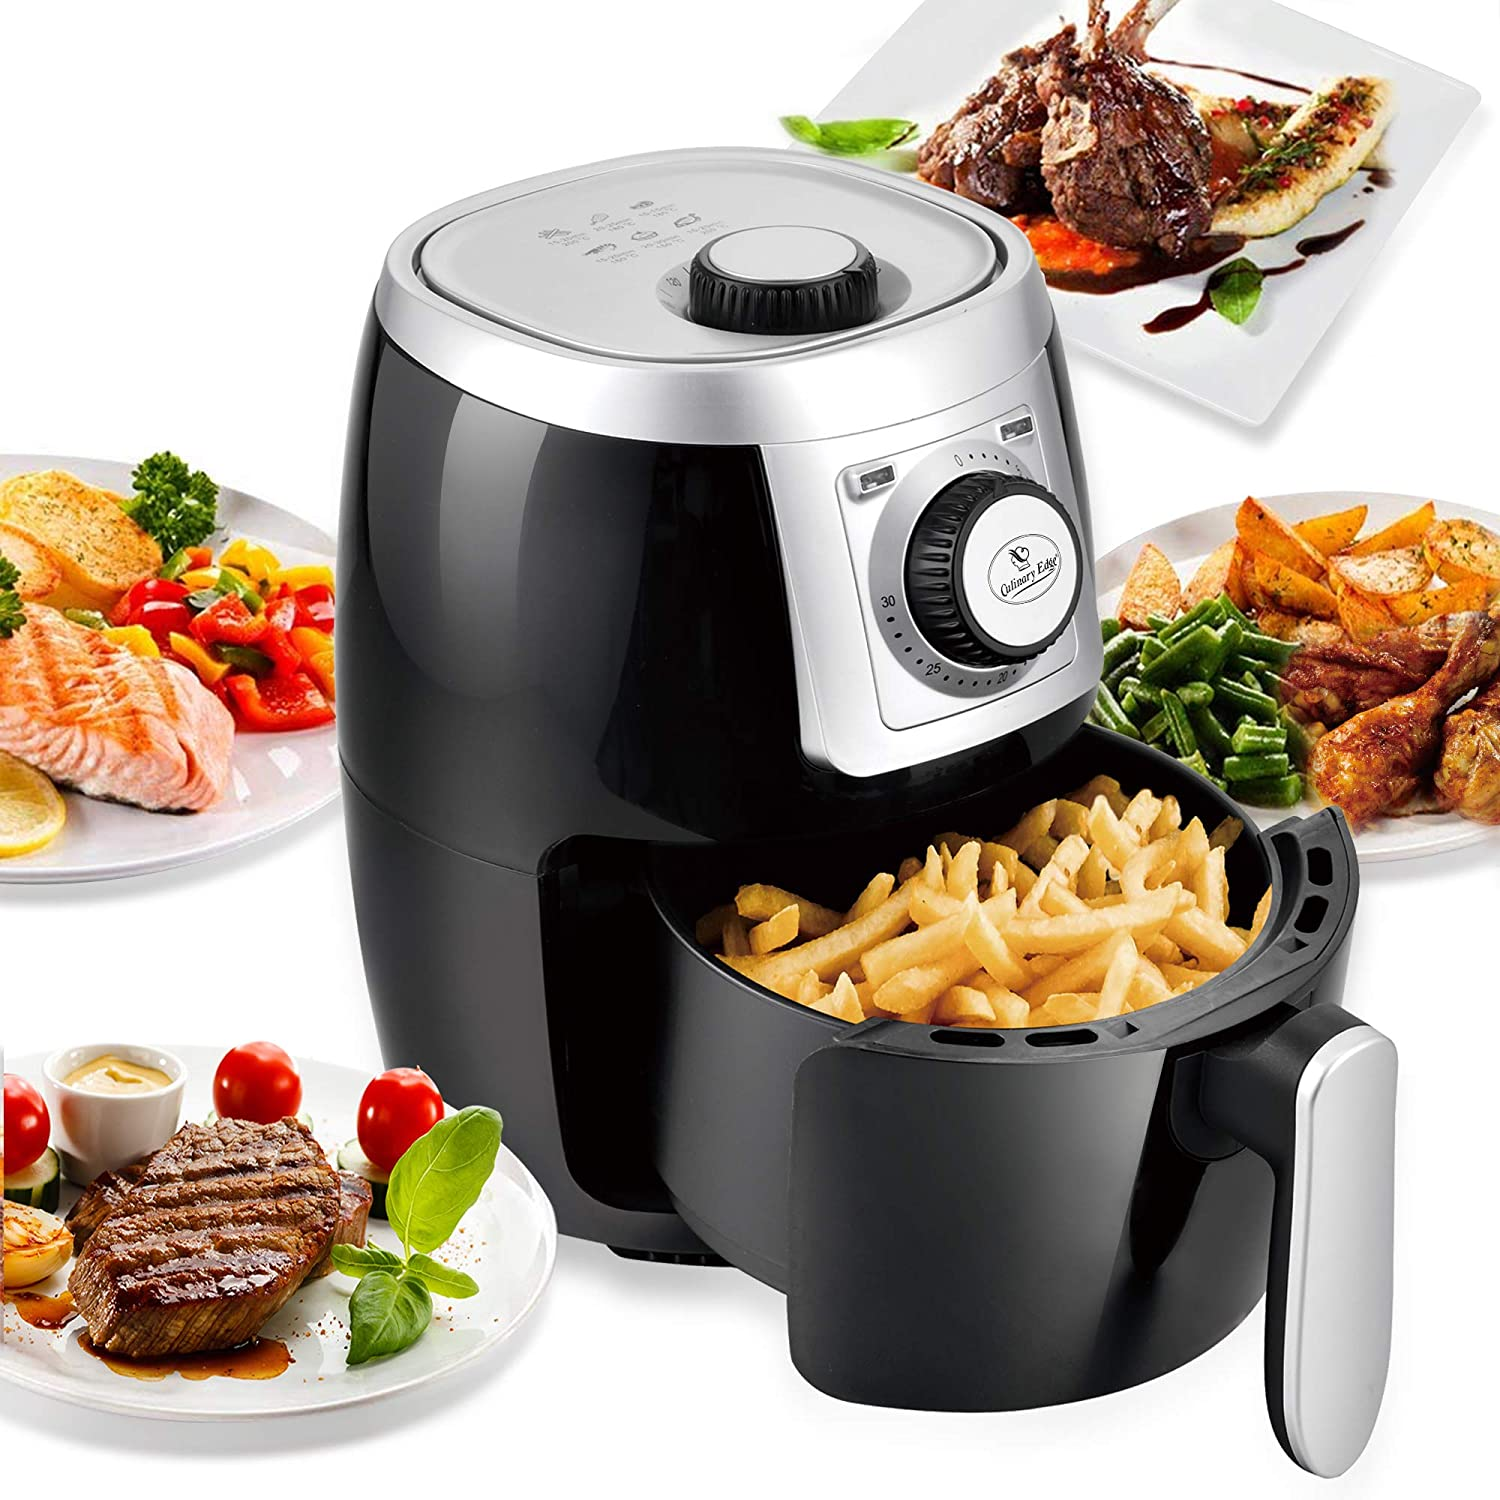 Culinary Edge 2.1QT Compact Electric Small Air Fryer + Oven Cooker, Nonstick Fry Basket, Dishwasher Safe, Auto Shut Off Feature - Black